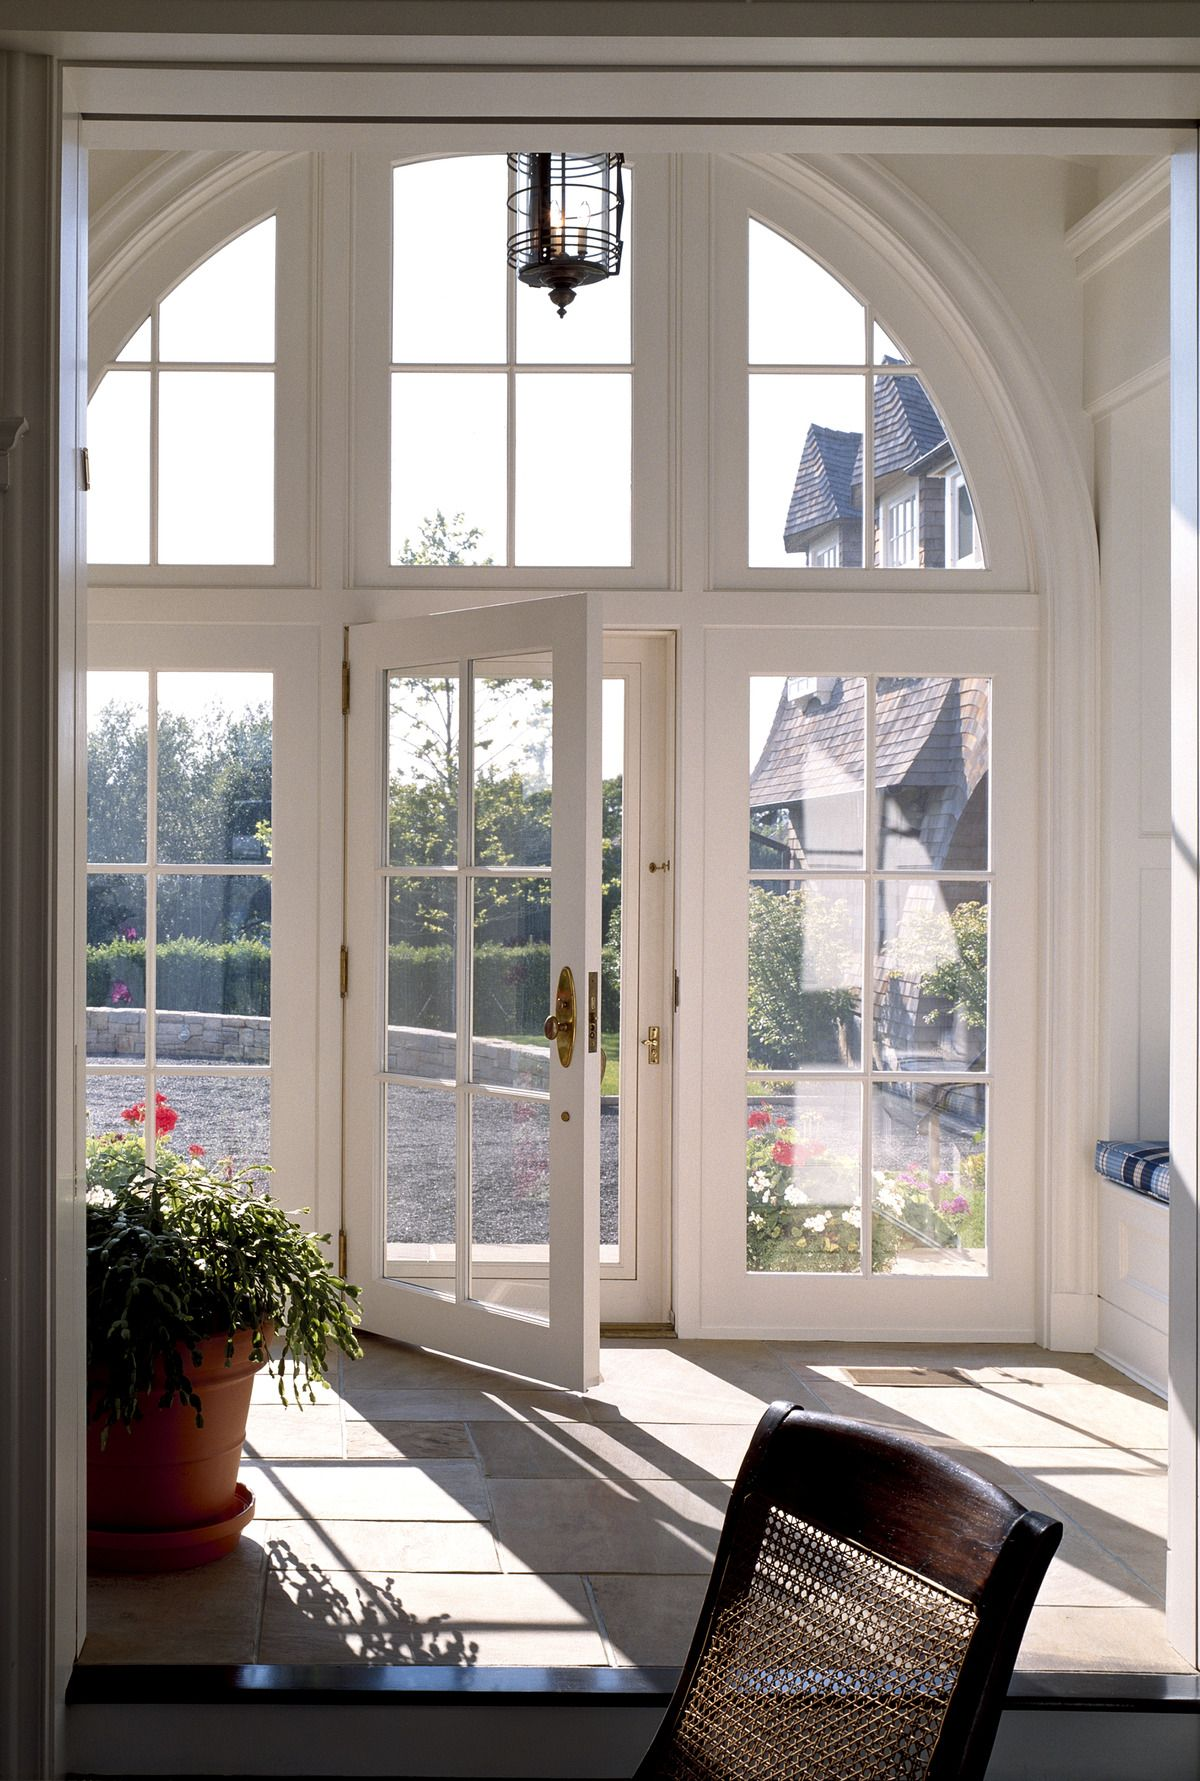 Window dressing ideas for arched windows  pin by  in the mix  on home styling  pinterest  more architects